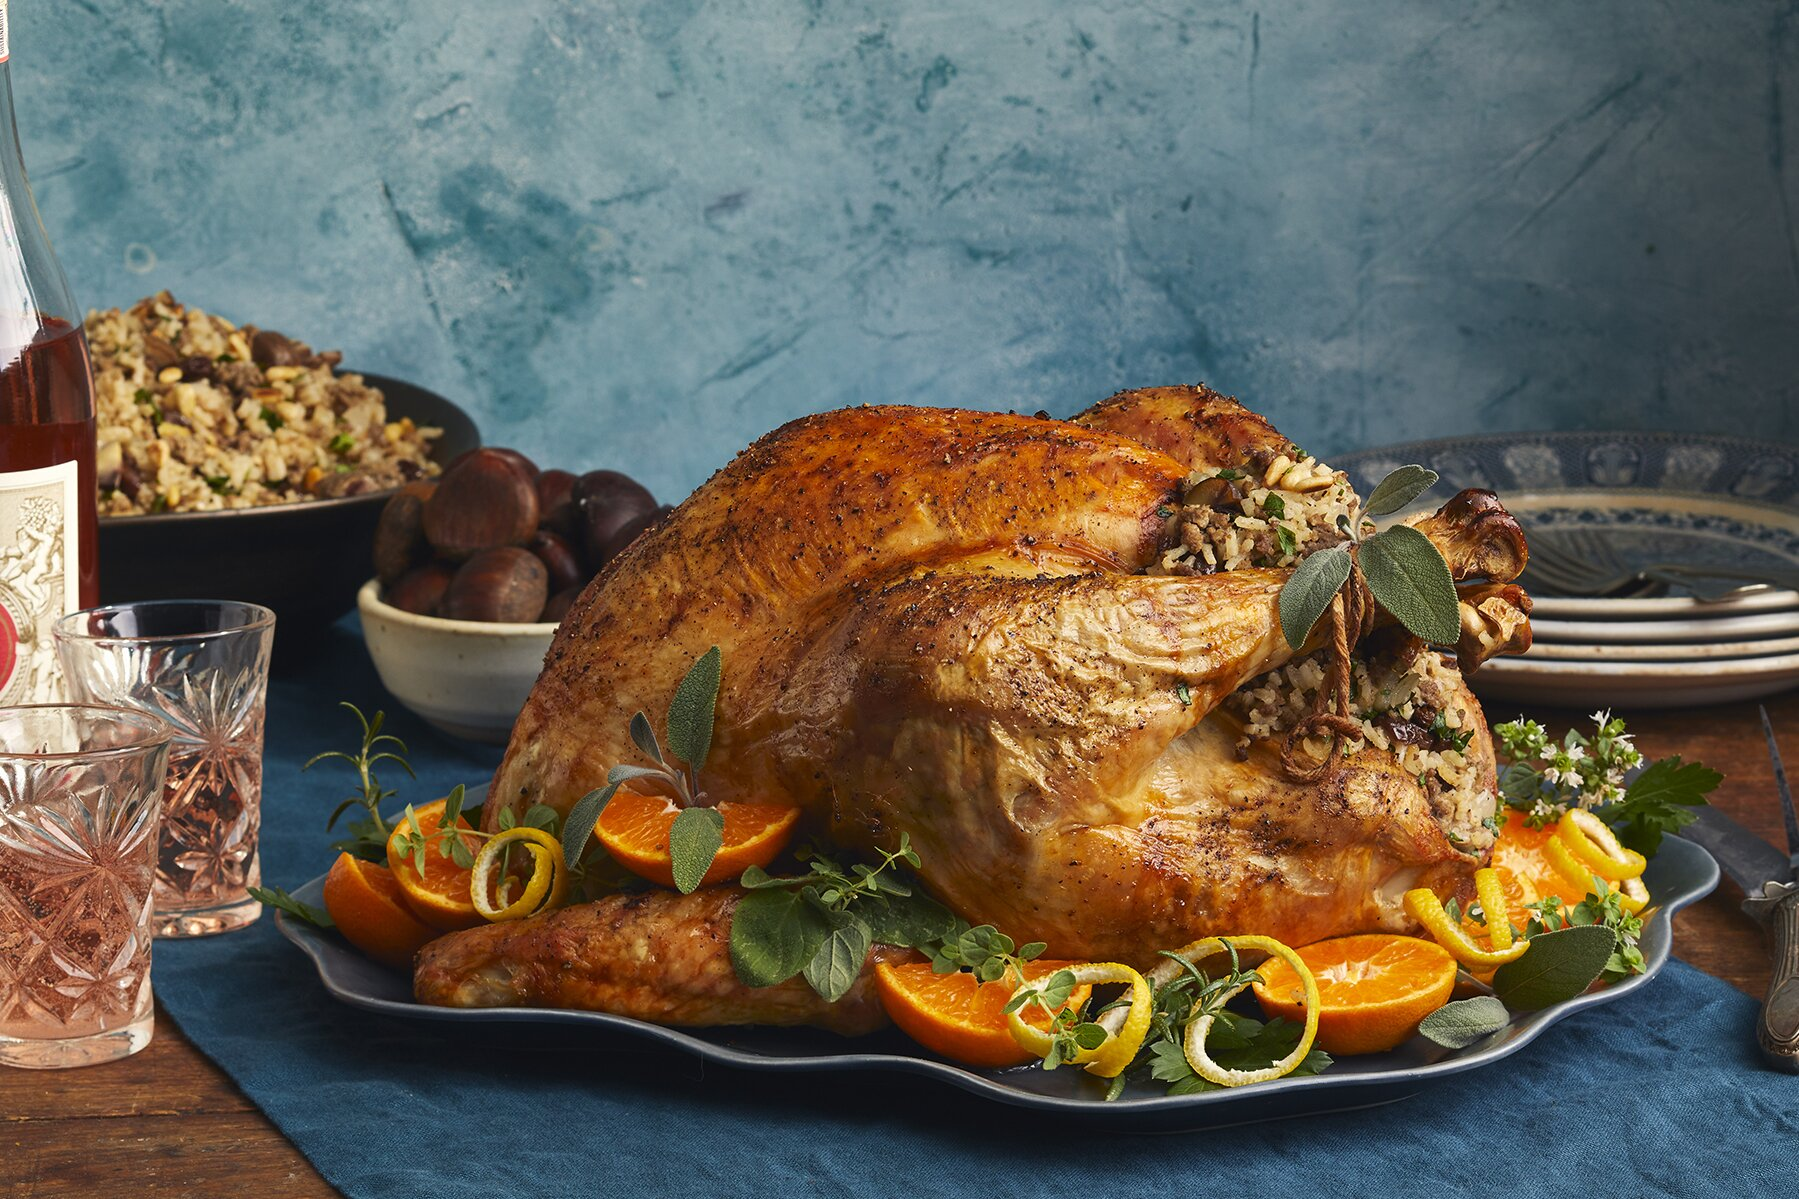 Authentic Stuffed Turkey Recipe for Thanksgiving